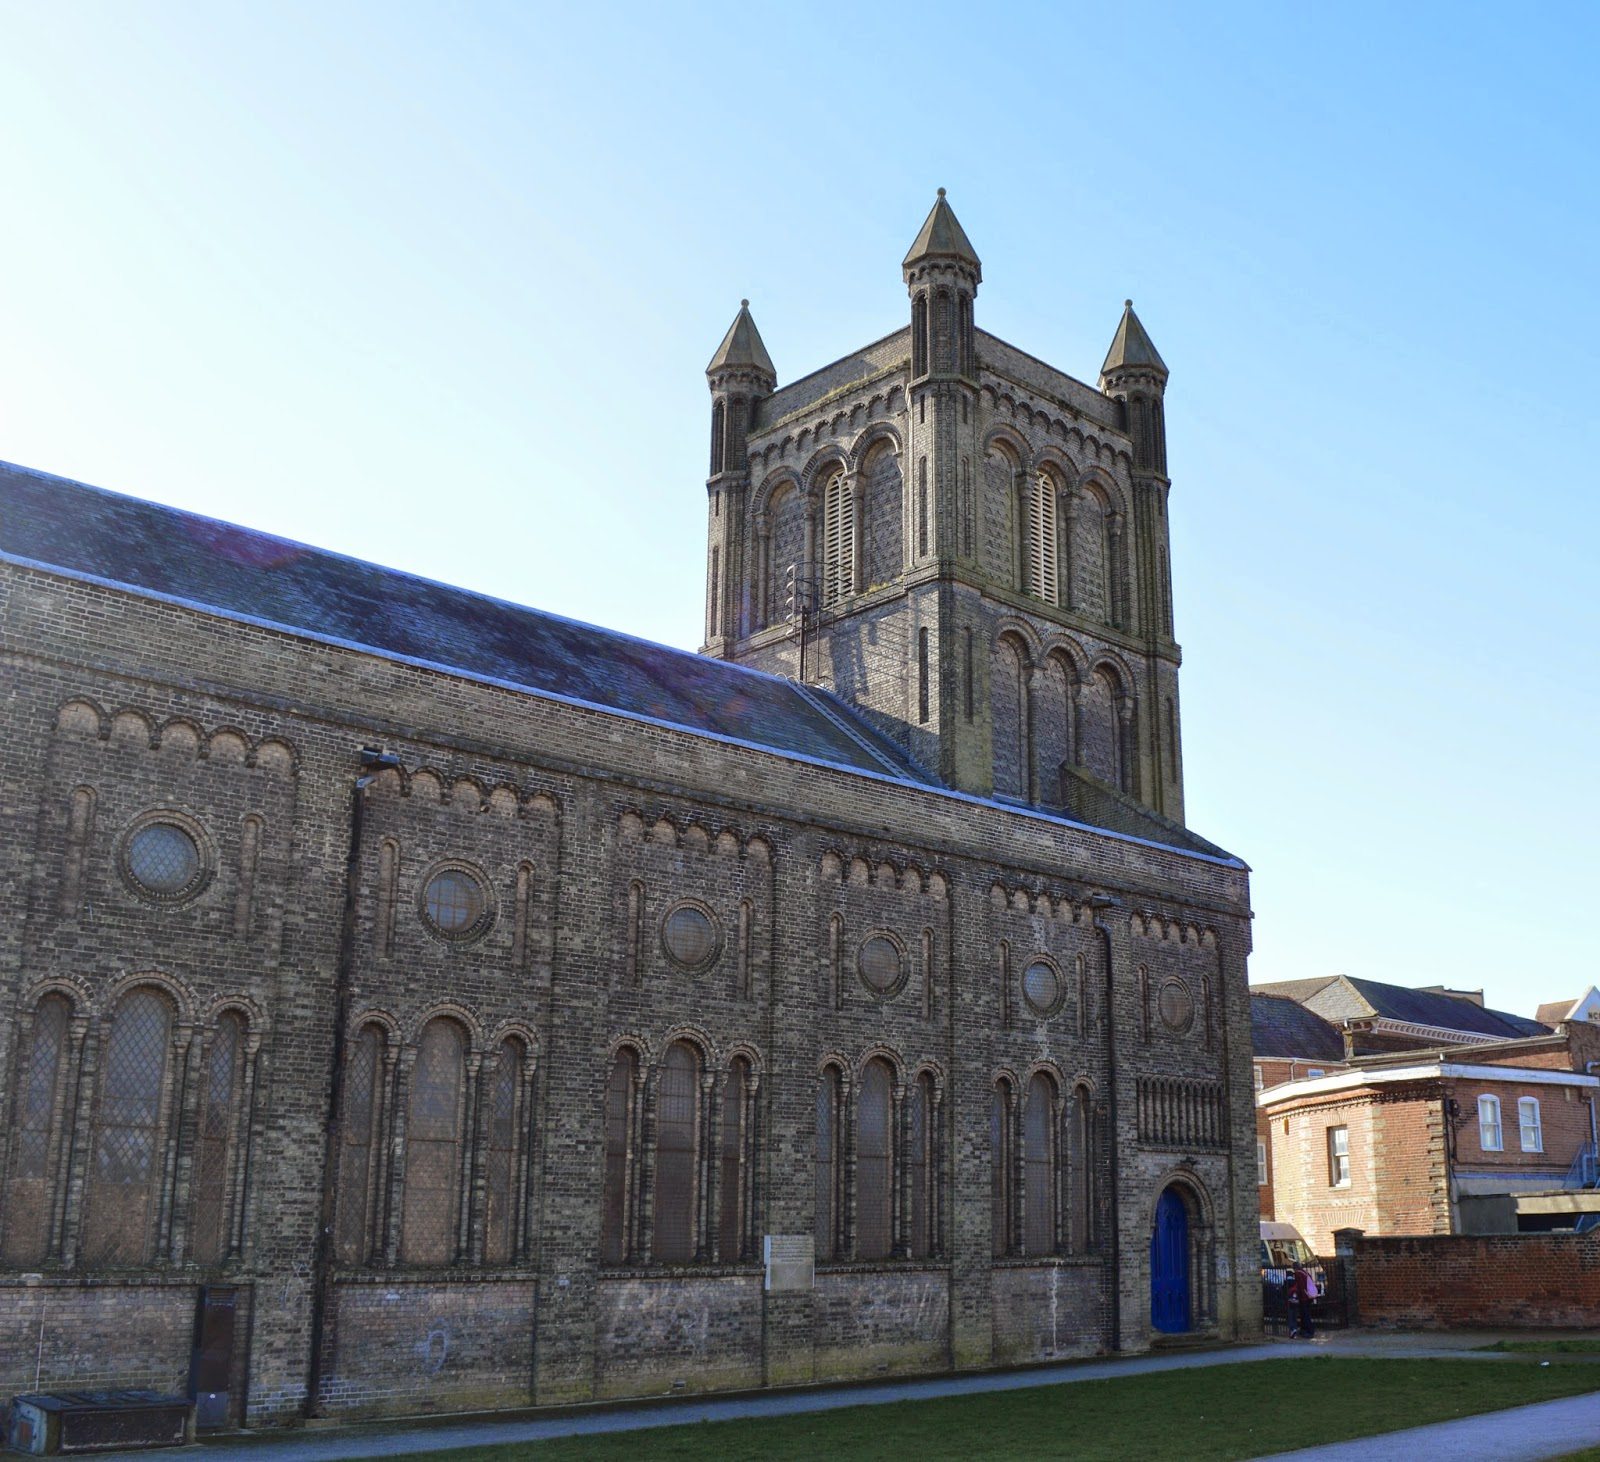 St Botolph's Church, Colchester, Augustinian priory, historical, Essex, photograph